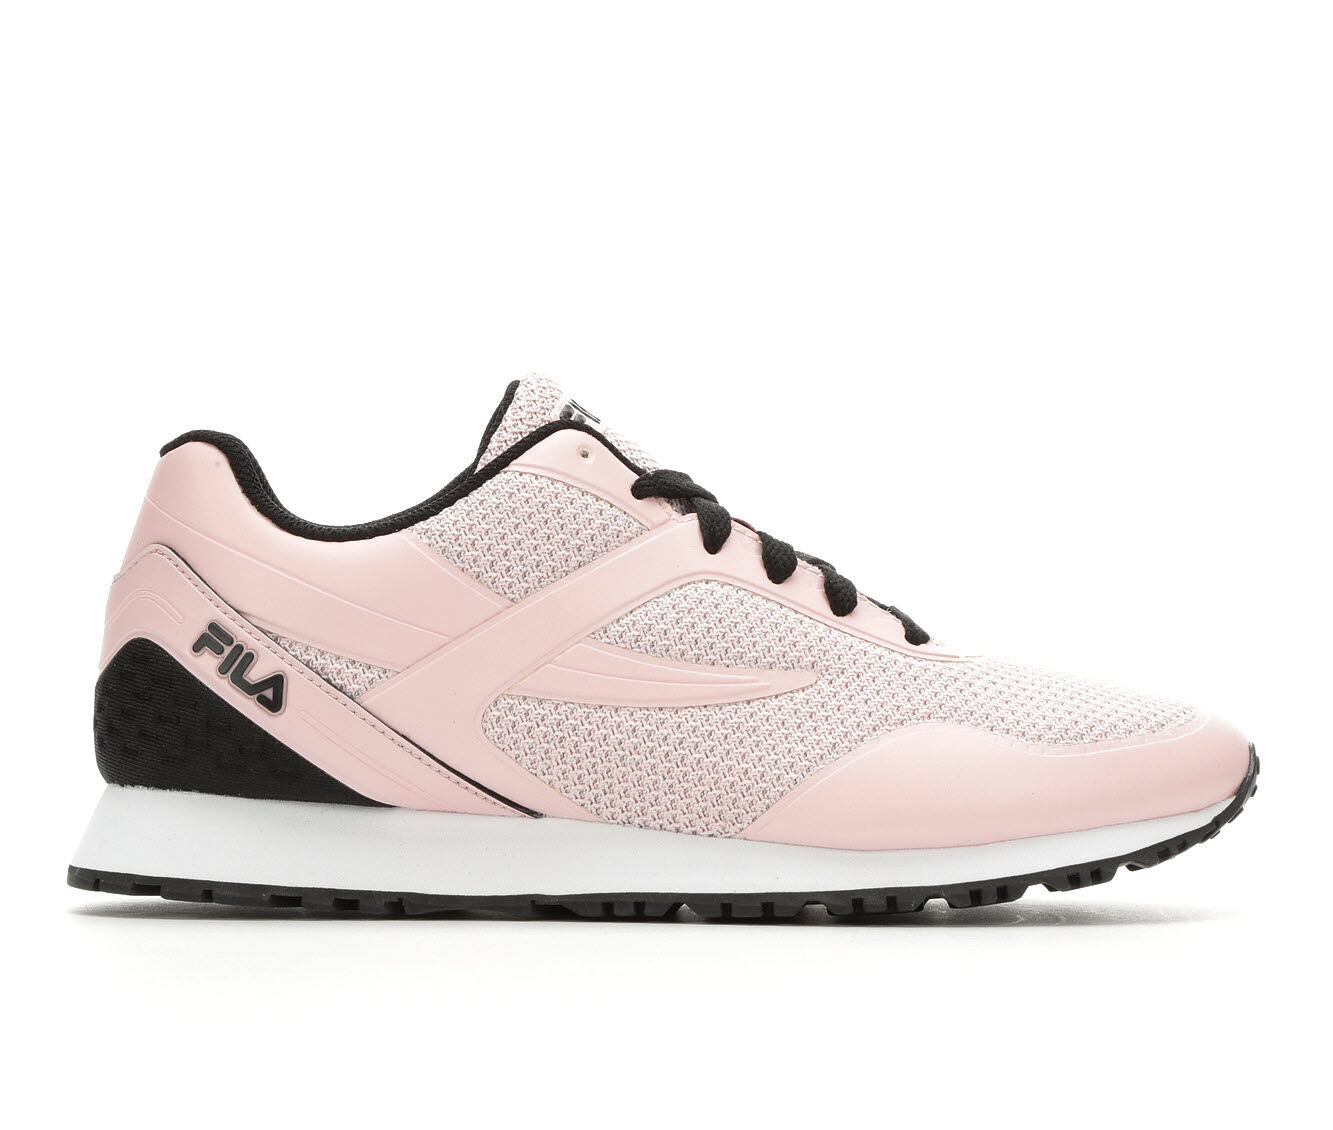 Women's Fila PostRunner 2 Ultra Metallic Retro Sneakers Pink/Black/Wht